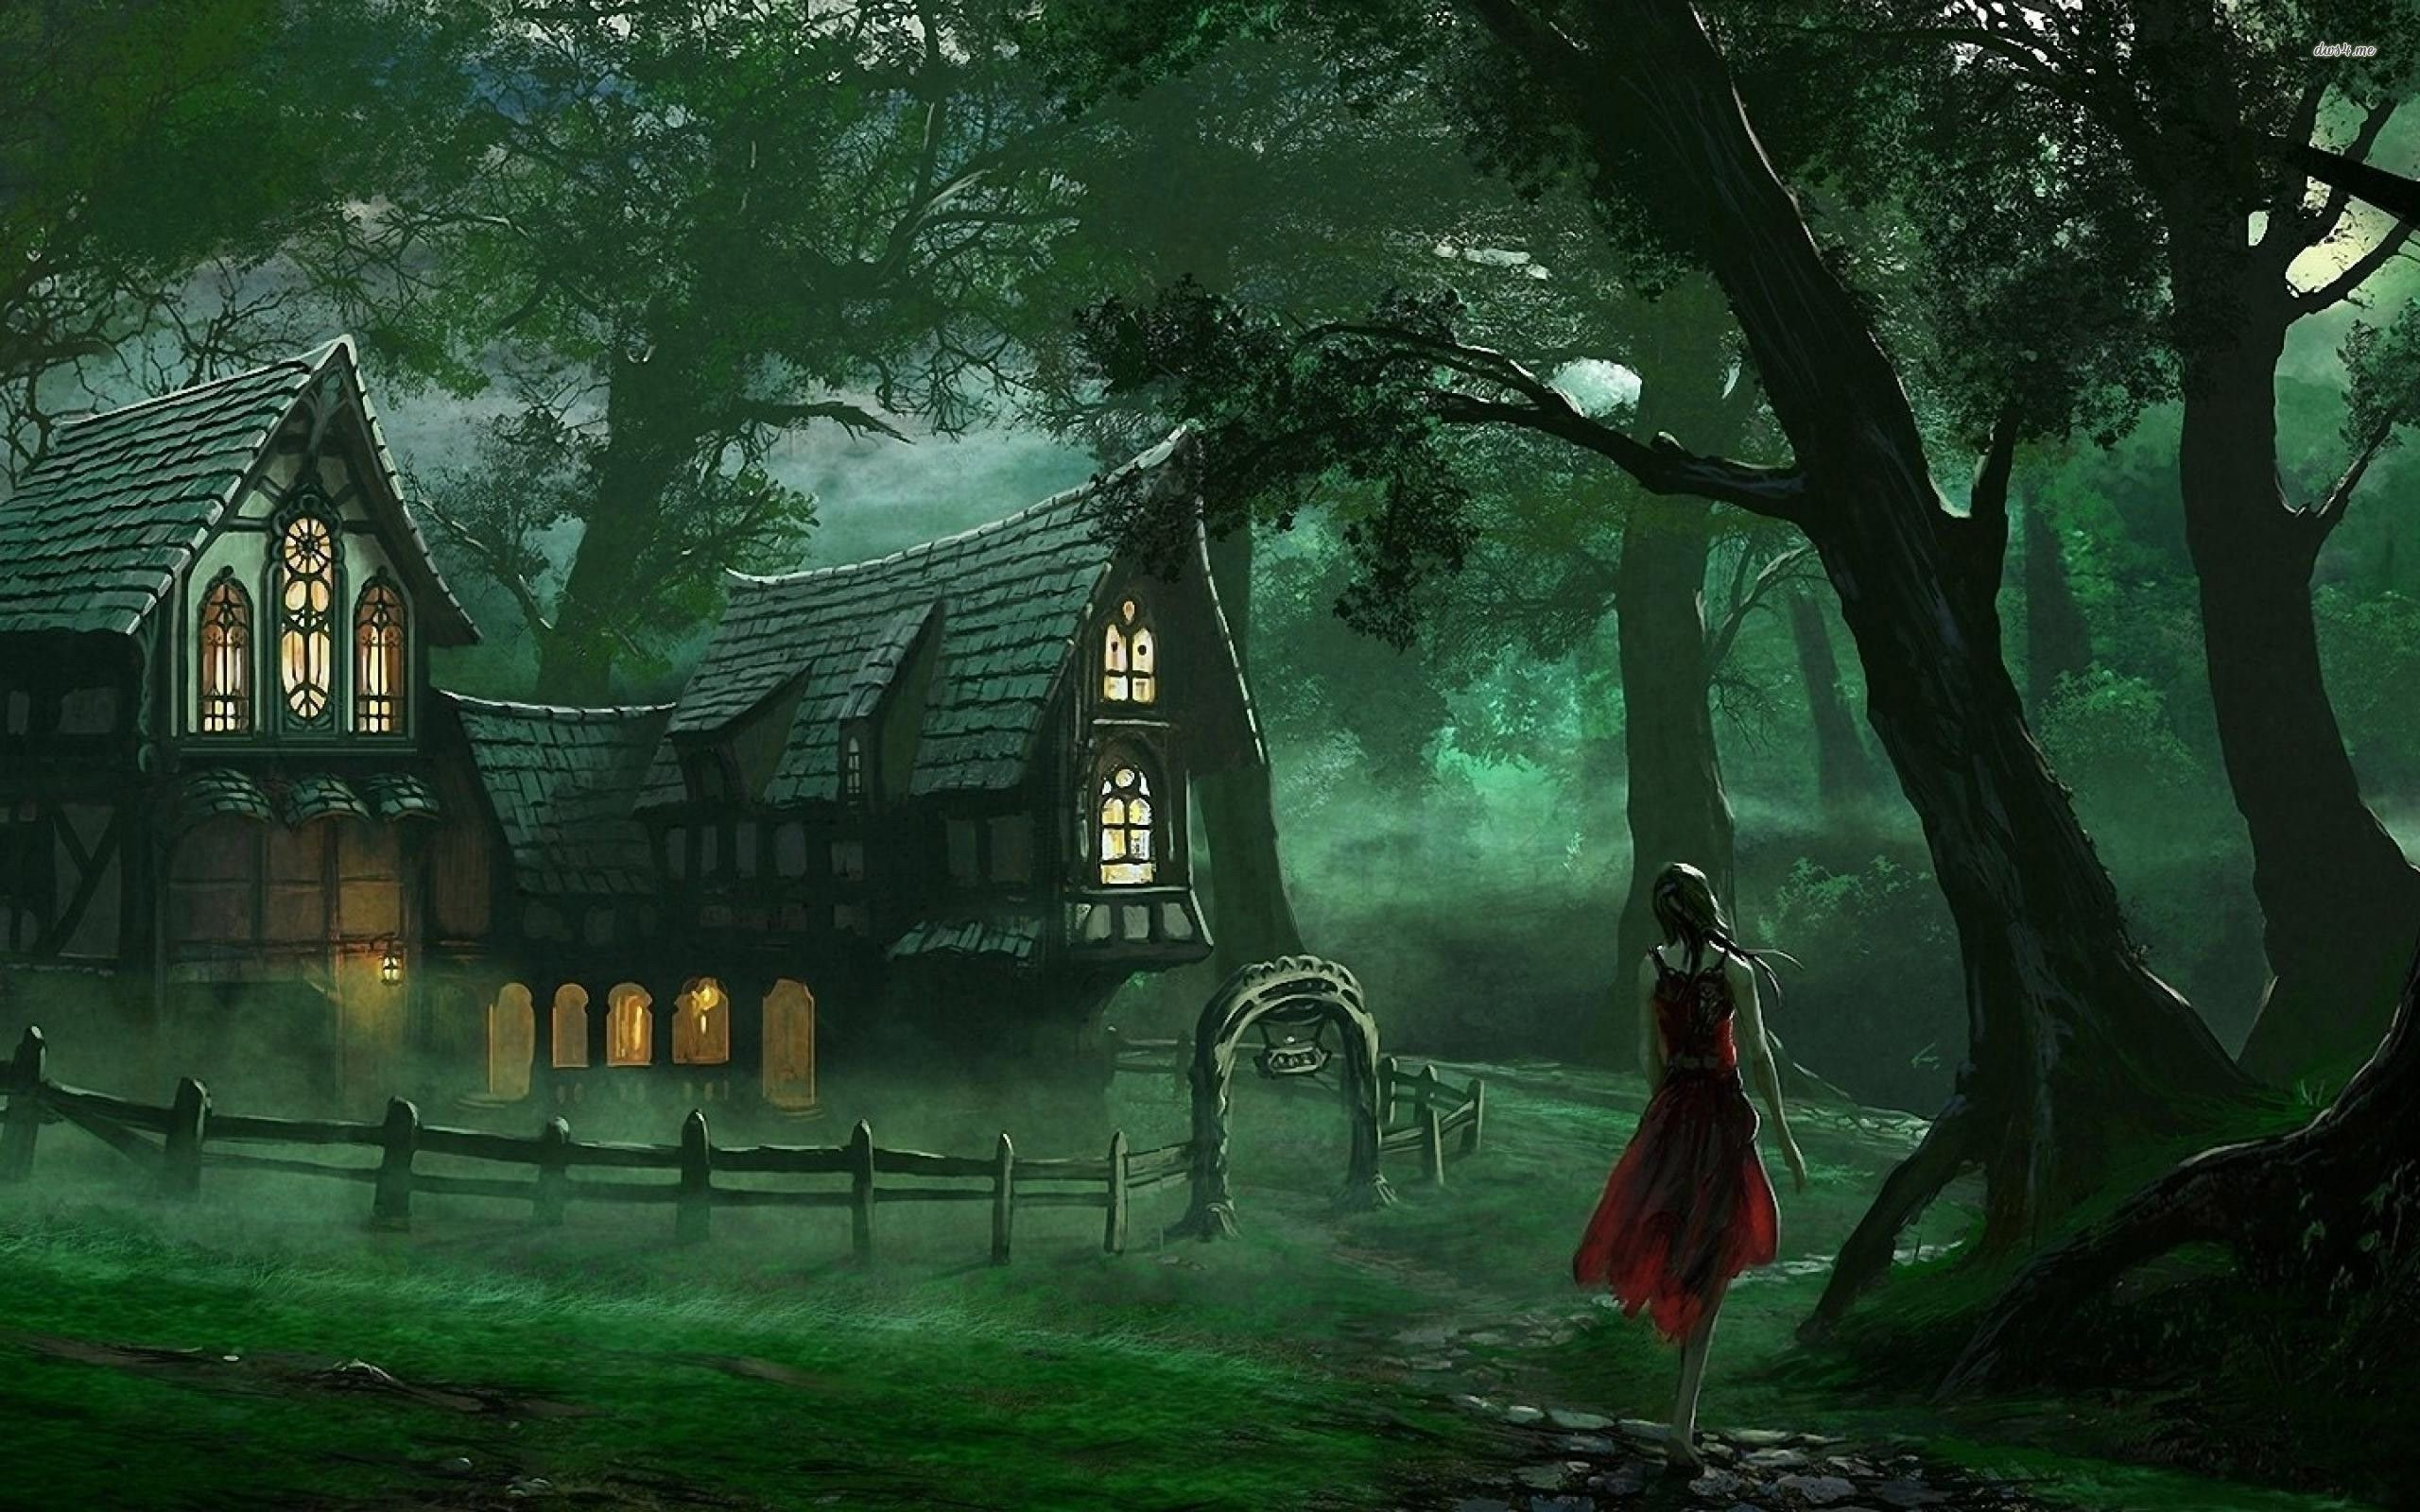 Red Riding Hood Wallpaper 83 Pictures